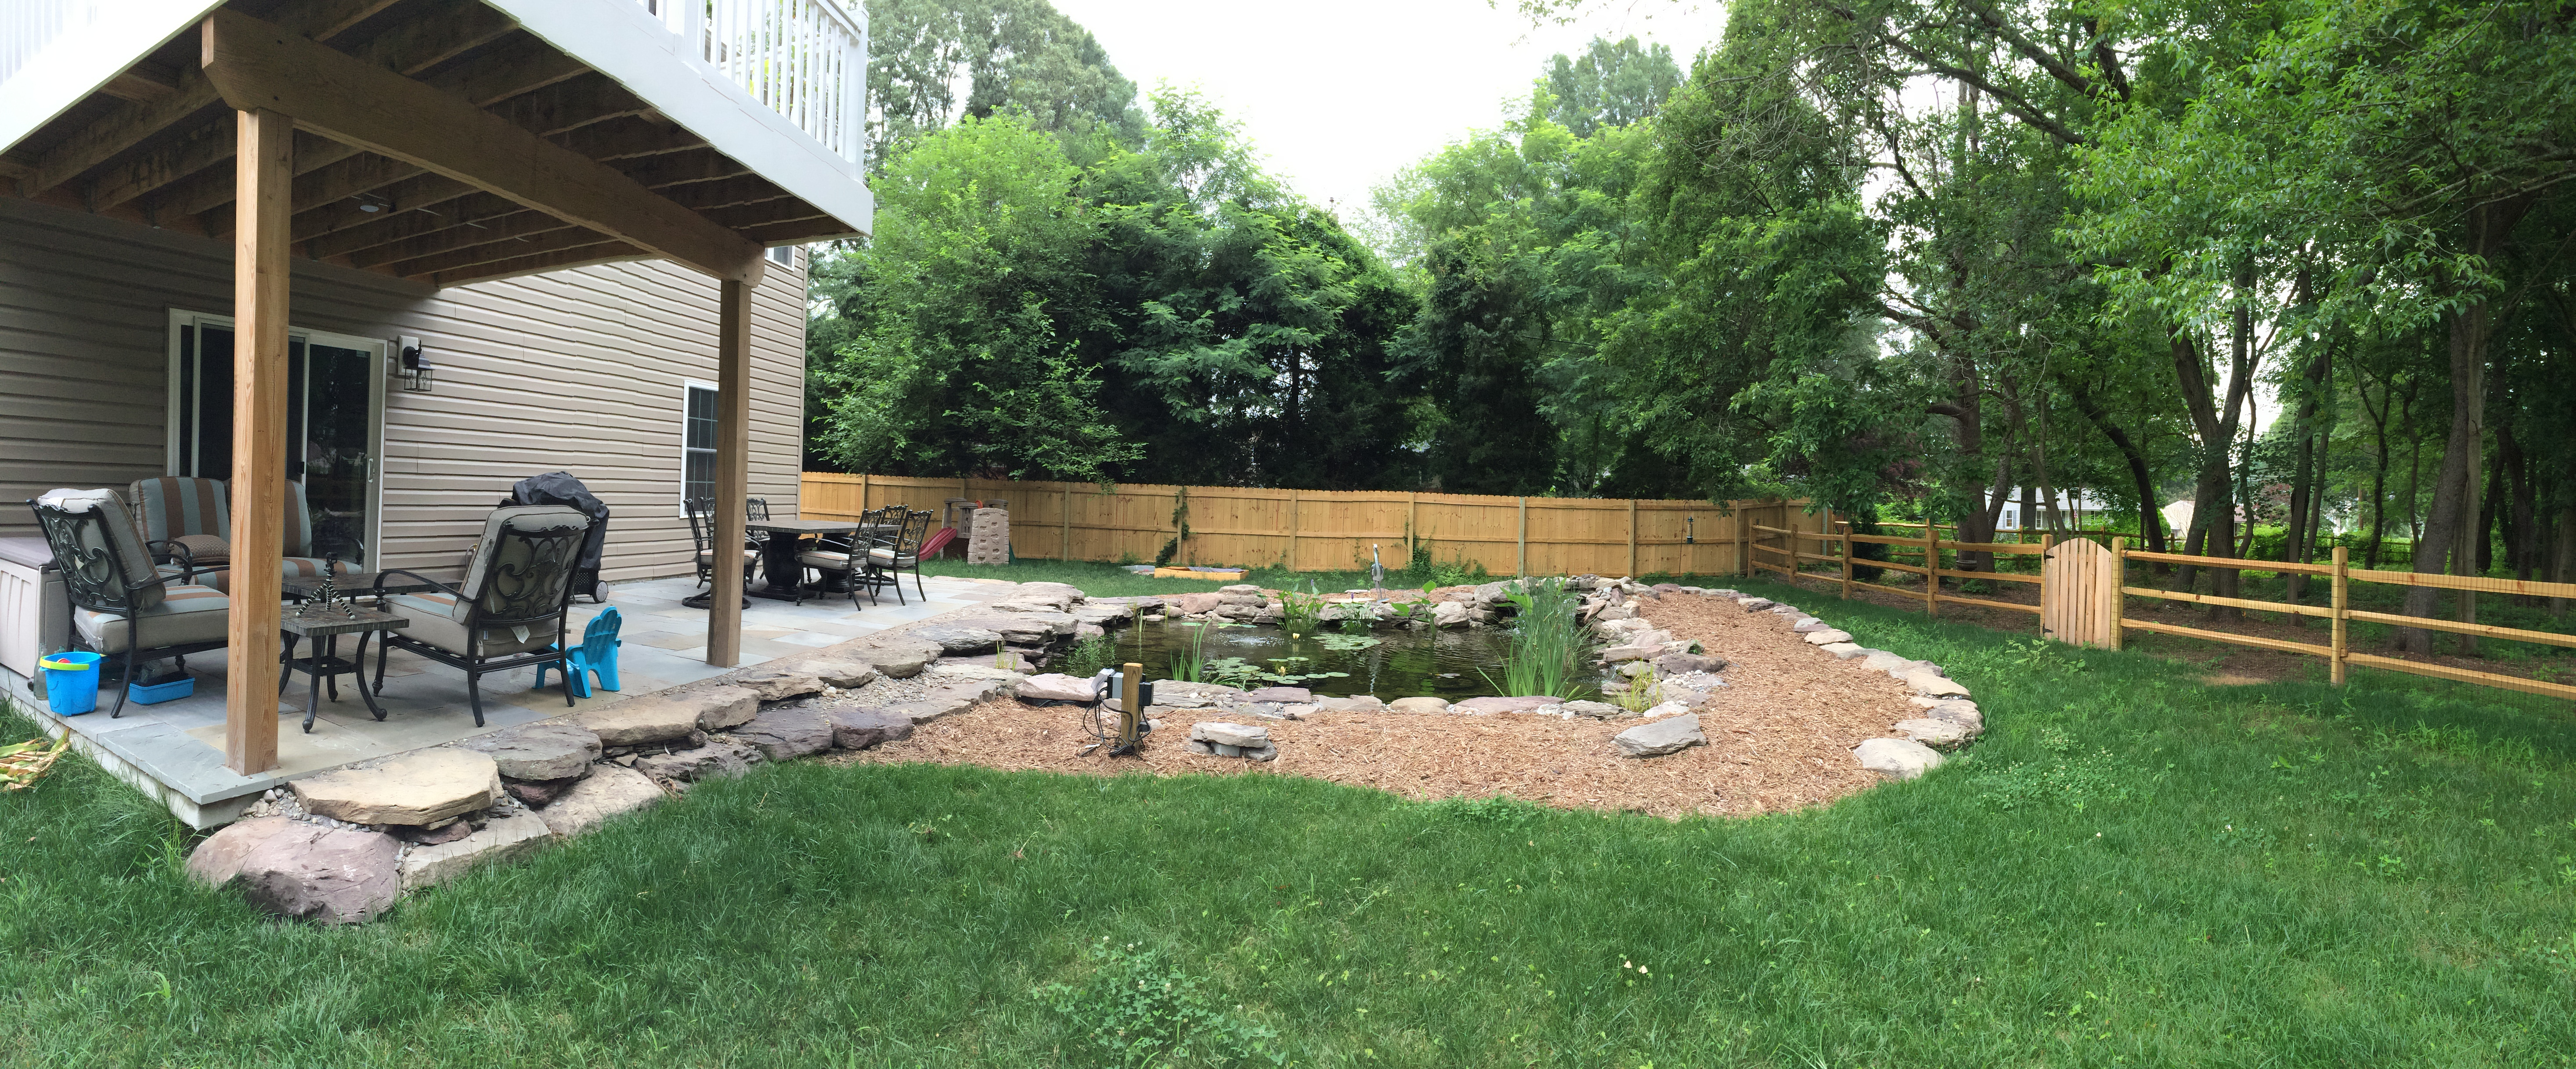 A Backyard Idea Set In Severn Md Premier Ponds Of Maryland Dc in 12 Some of the Coolest Designs of How to Build New Backyard Ideas